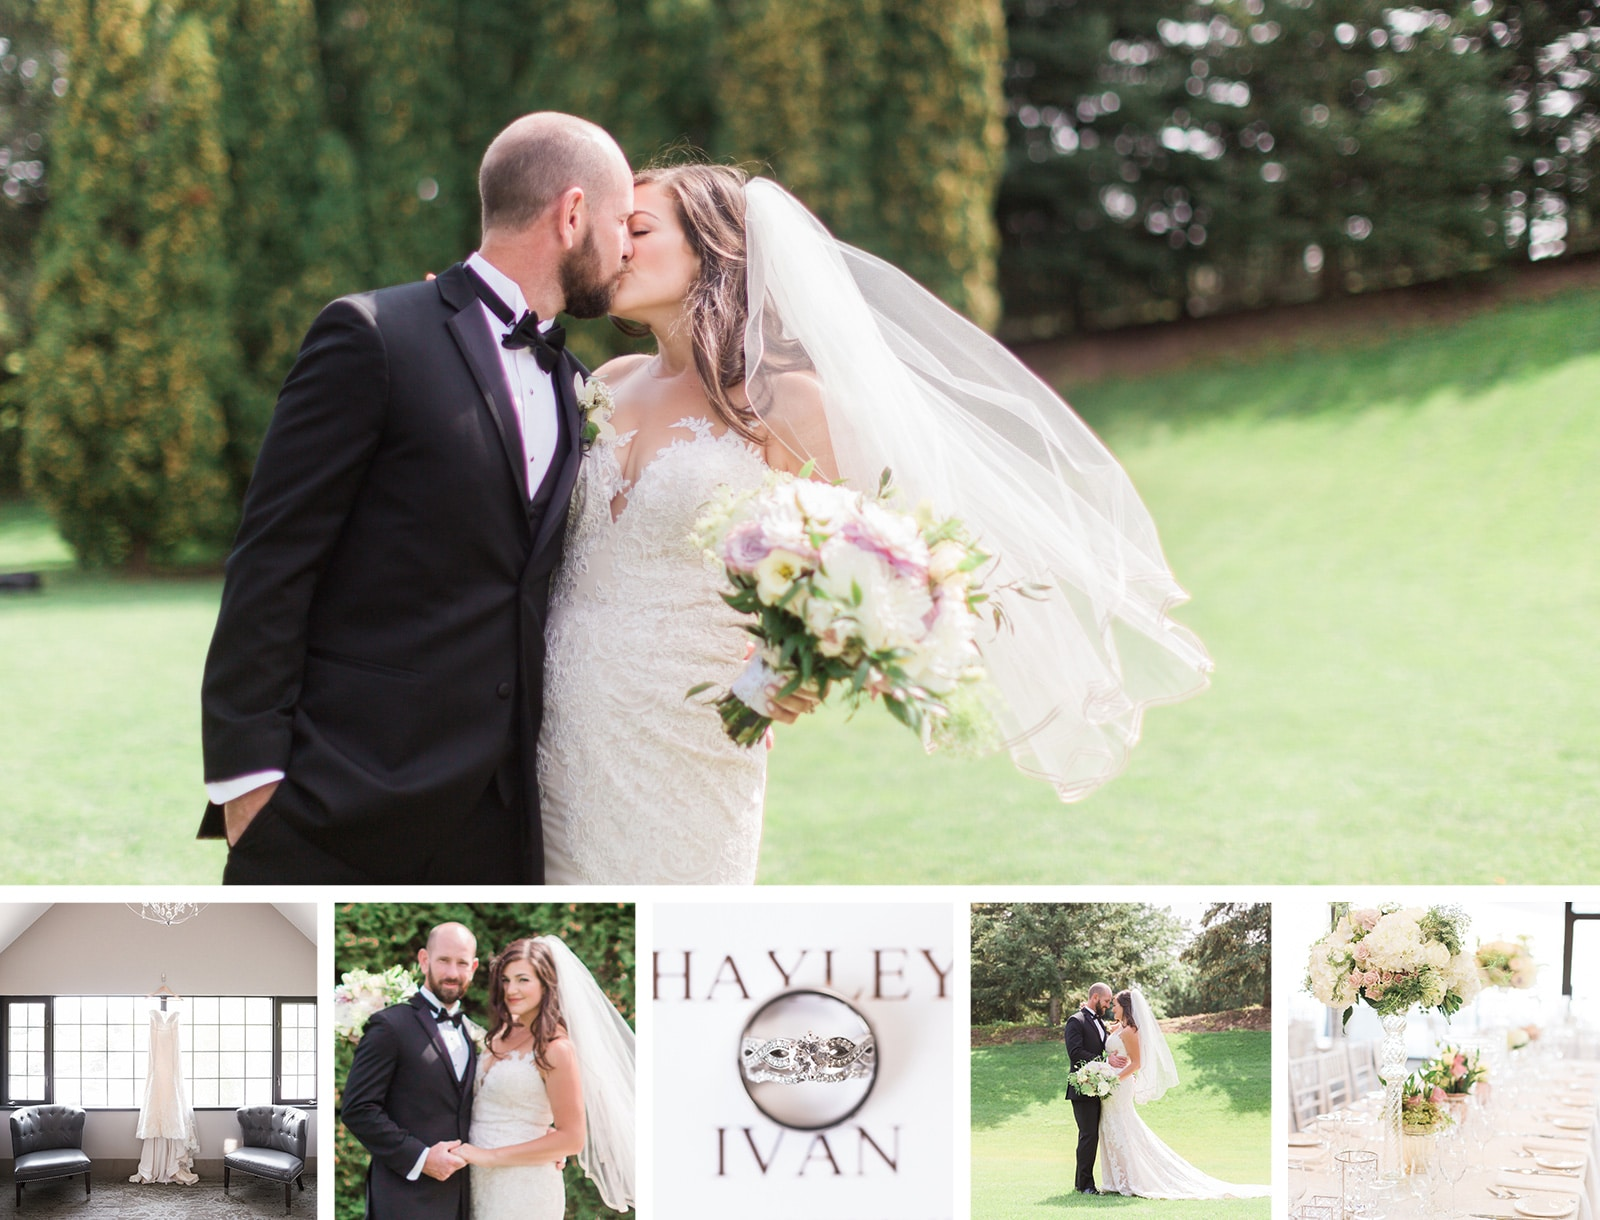 Classic Jewish Wedding at The Manor in Kettleby: Hayley + Ivan